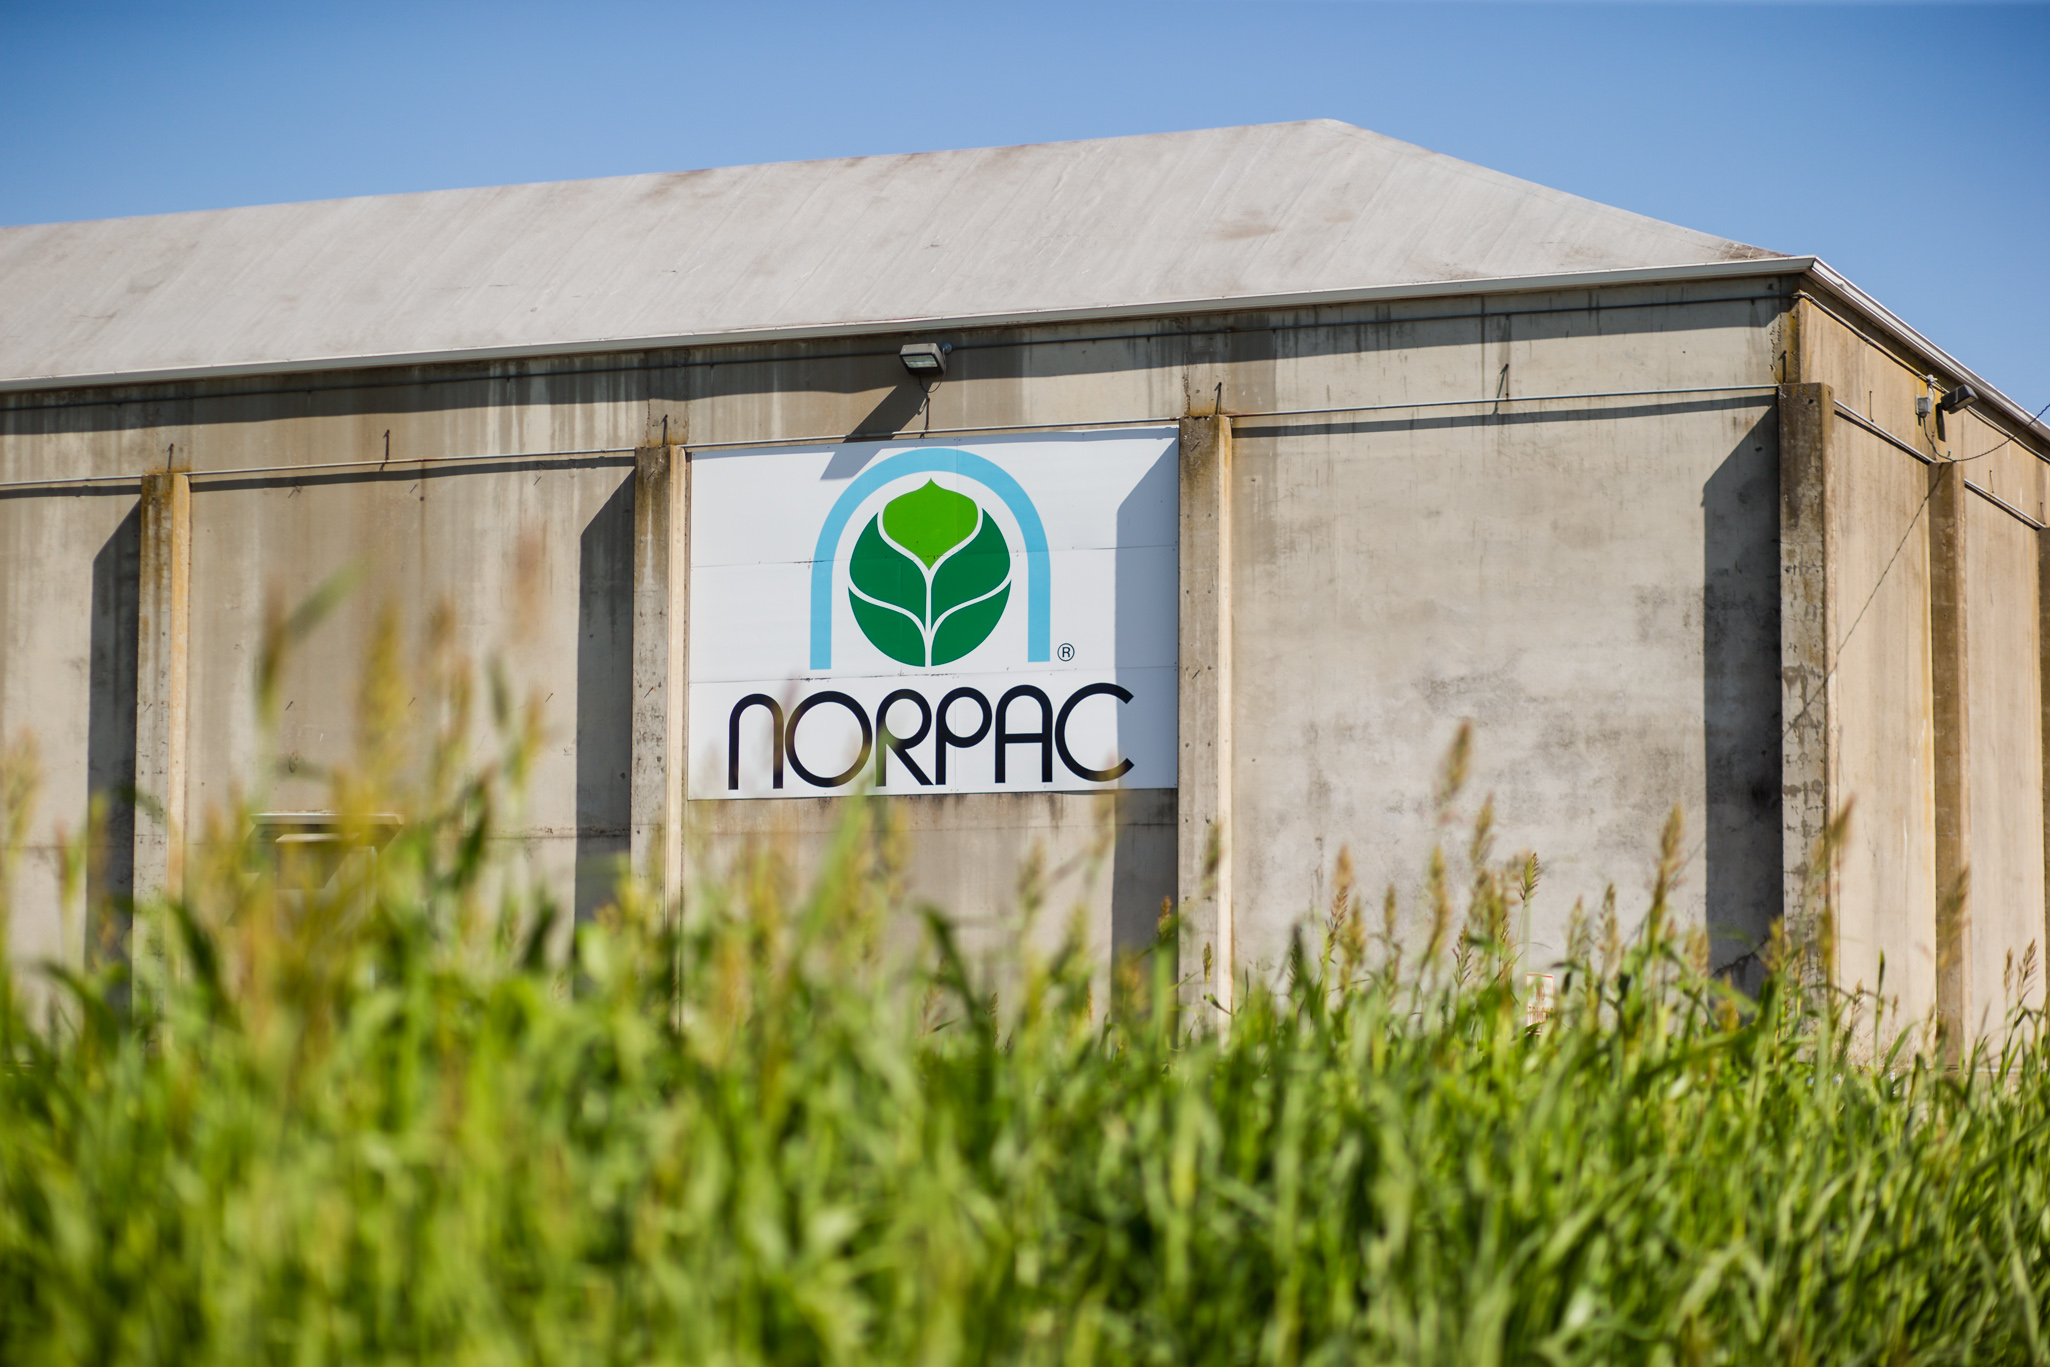 Agriculture photography,  corporate photography, industrial photography, portrait Photographer, farm photography, farmers, growers, NORPAC Foods, sustainability, Portland Editorial Photographer, Portland Magazine Photographer, editorial photography, magazine photography, Portland People Photographer, nashco photo and video, Nashco, www.nashcophoto.com, crafted reality, photojournalism, photojournalist